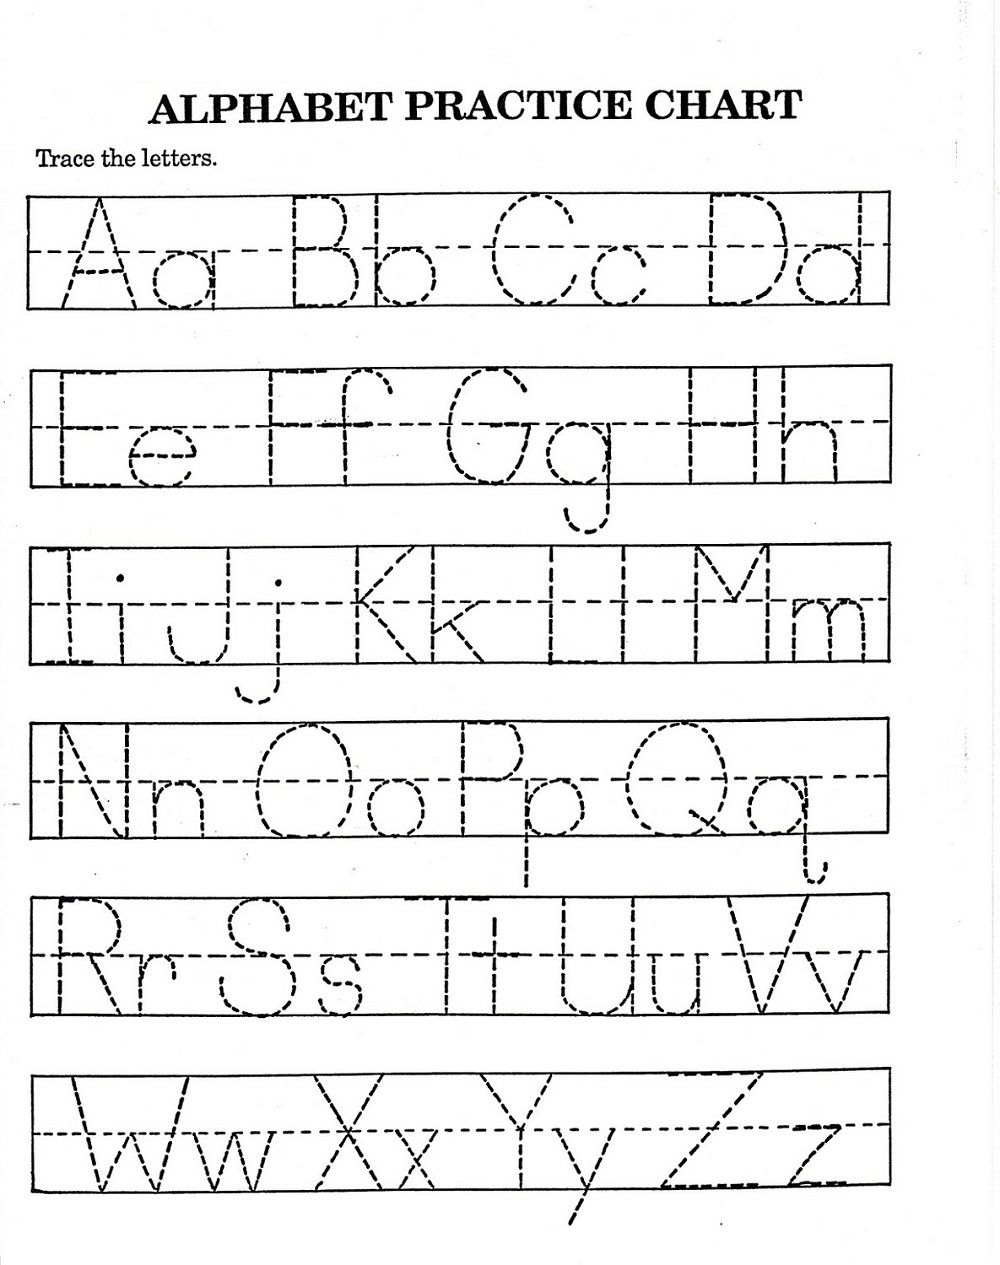 Free Traceable Alphabet Worksheets For Preschoolers within Alphabet Worksheets A-Z Pdf